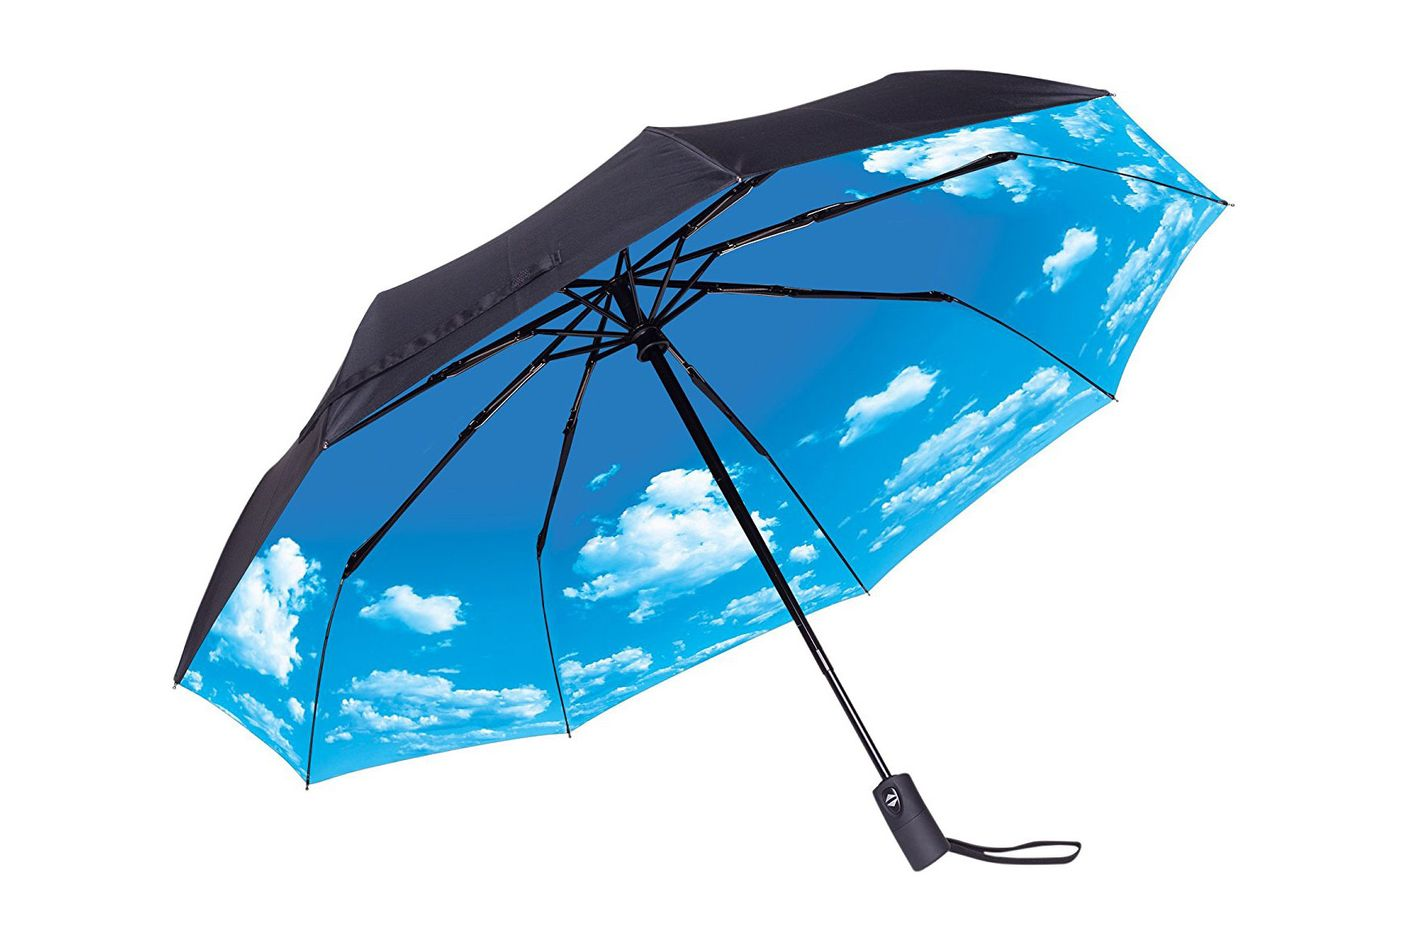 Rain-Mate Compact Travel Umbrella